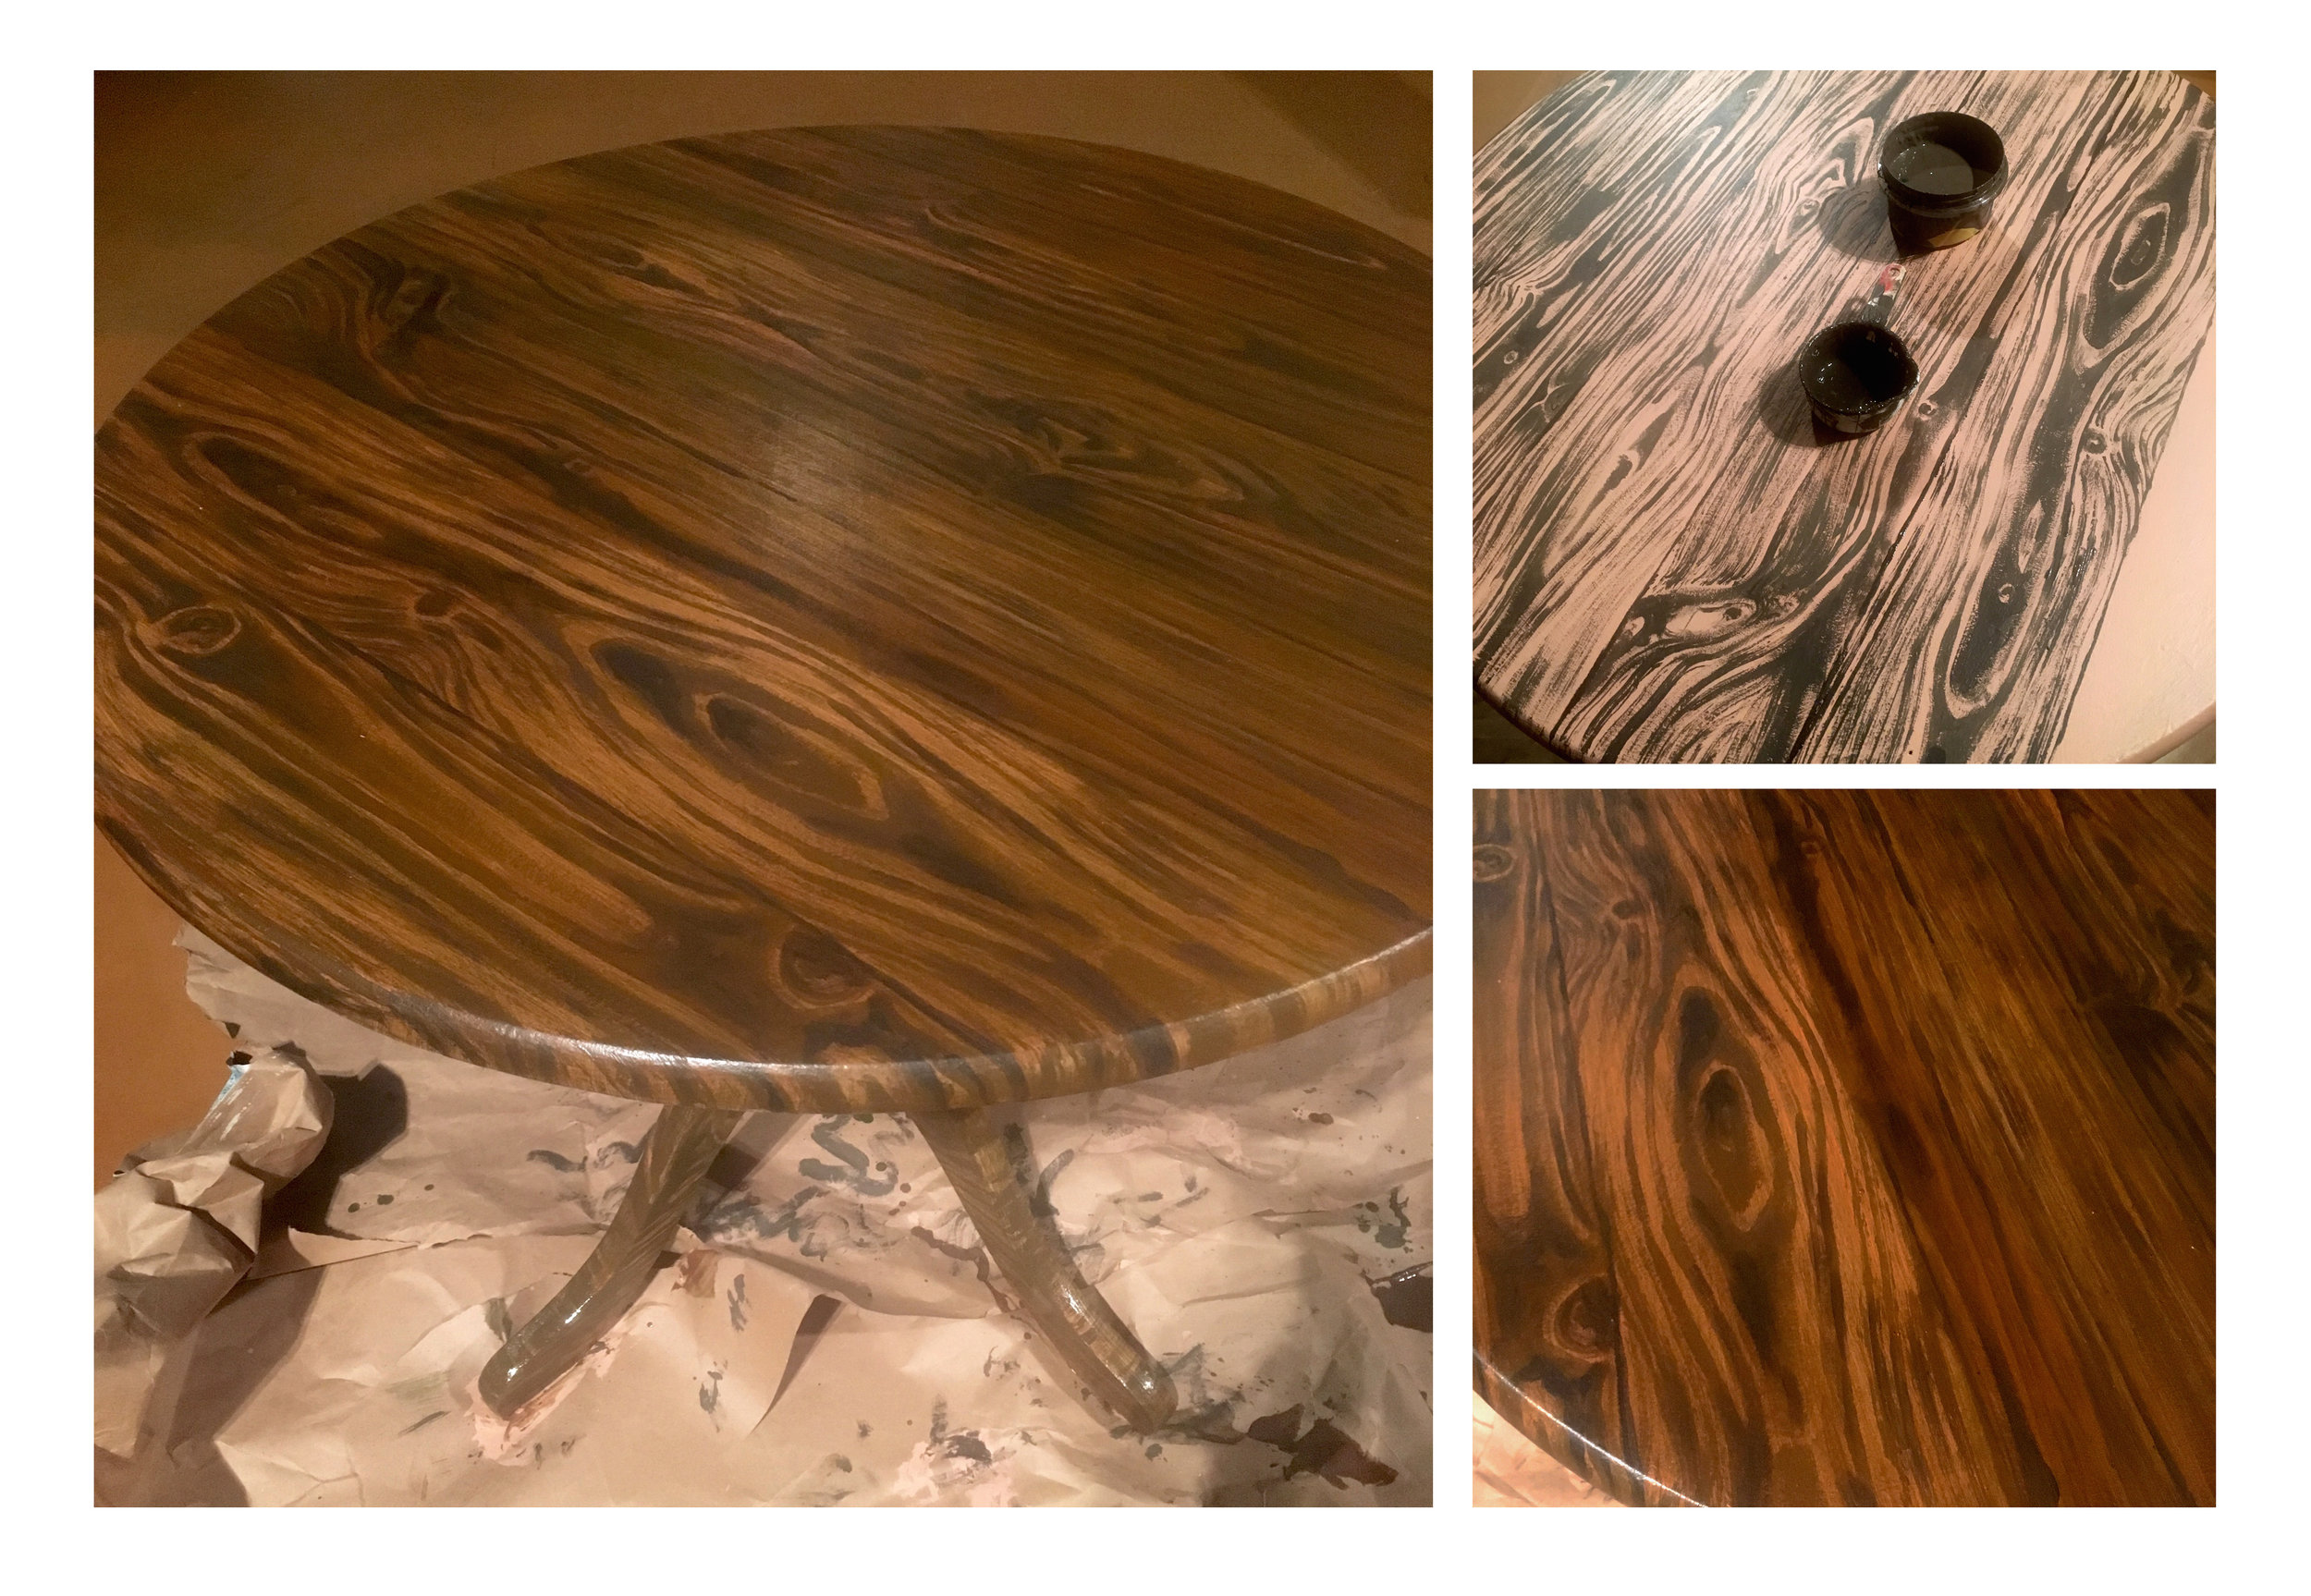 Faux Wood Grain Table, and process images